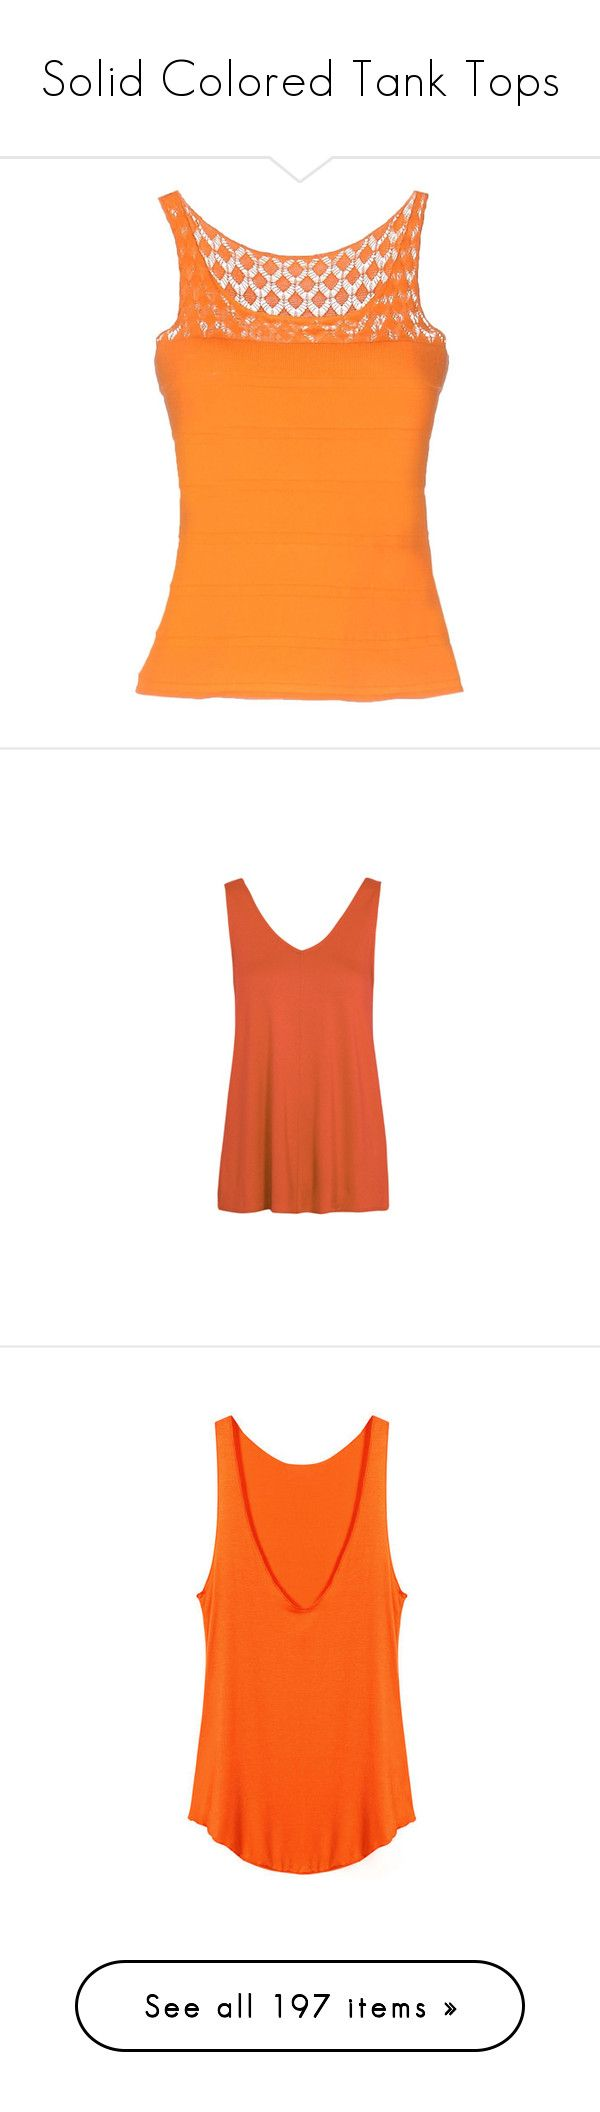 """""""Solid Colored Tank Tops"""" by labuck88 ❤ liked on Polyvore featuring outerwear, vests, orange, sleeveless vest, lightweight vest, vest waistcoat, sleeveless waistcoat, orange vest, tops and sleeveless tank"""